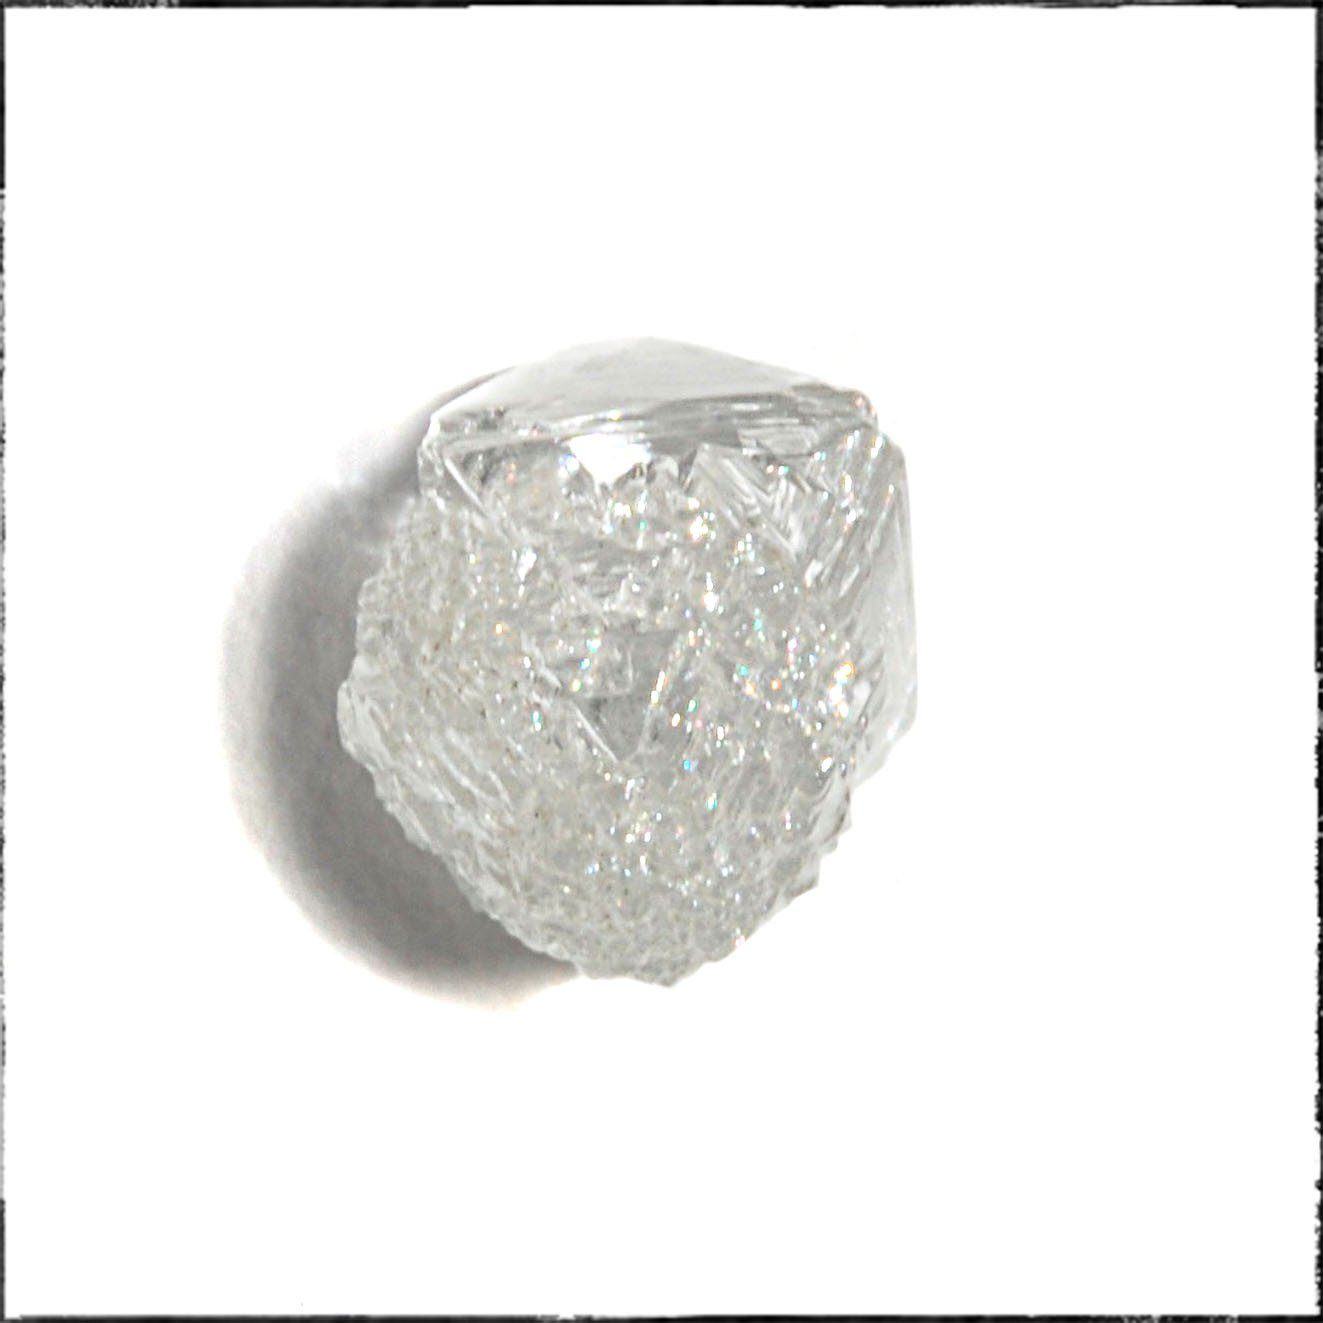 1.08 carat rough diamond crystal Raw Diamond Botswana